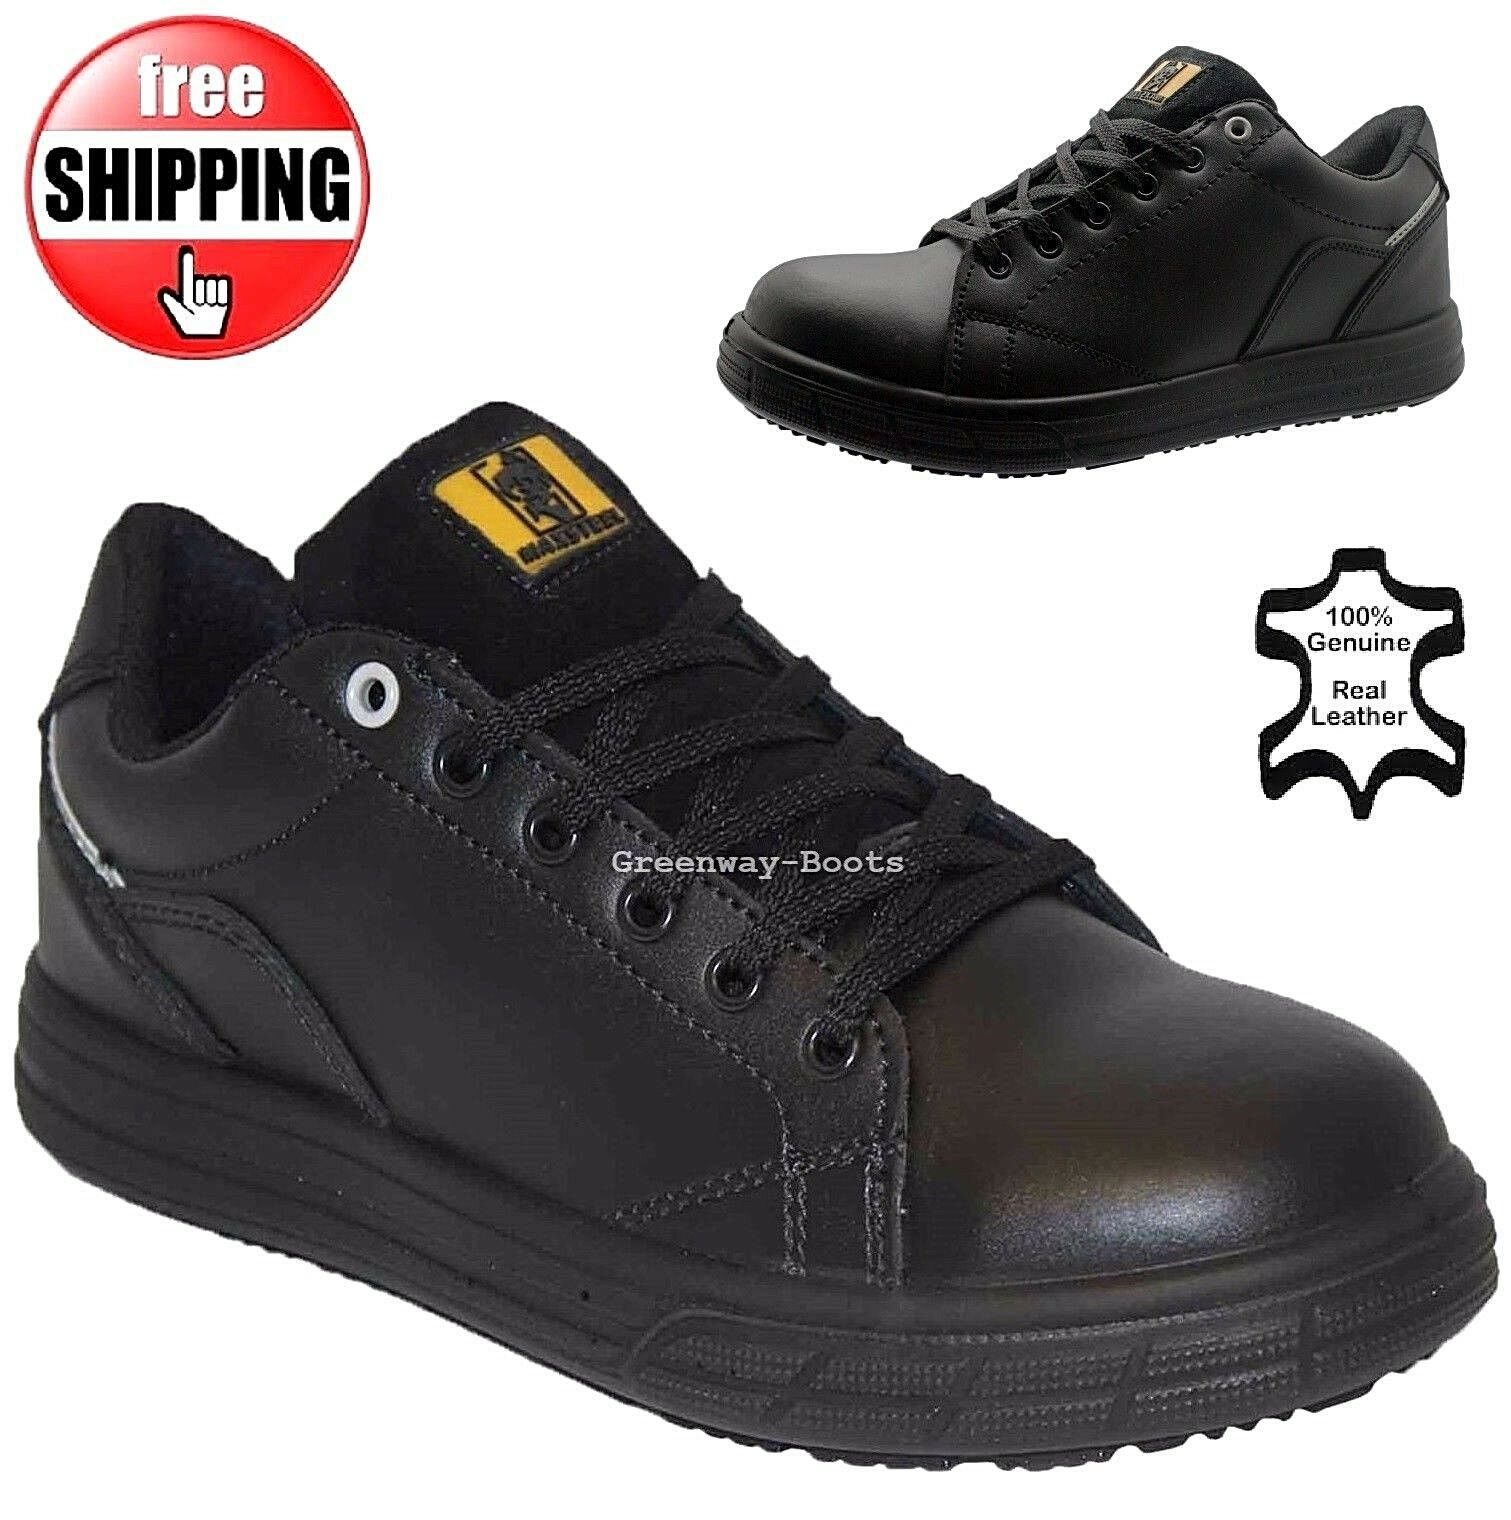 MENS LEATHER LIGHTWEIGHT STEEL TOE CAP BOOTS SAFETY TRAINERS BLACK SHOES BOOTS CAP SZ 6-13 07ae76